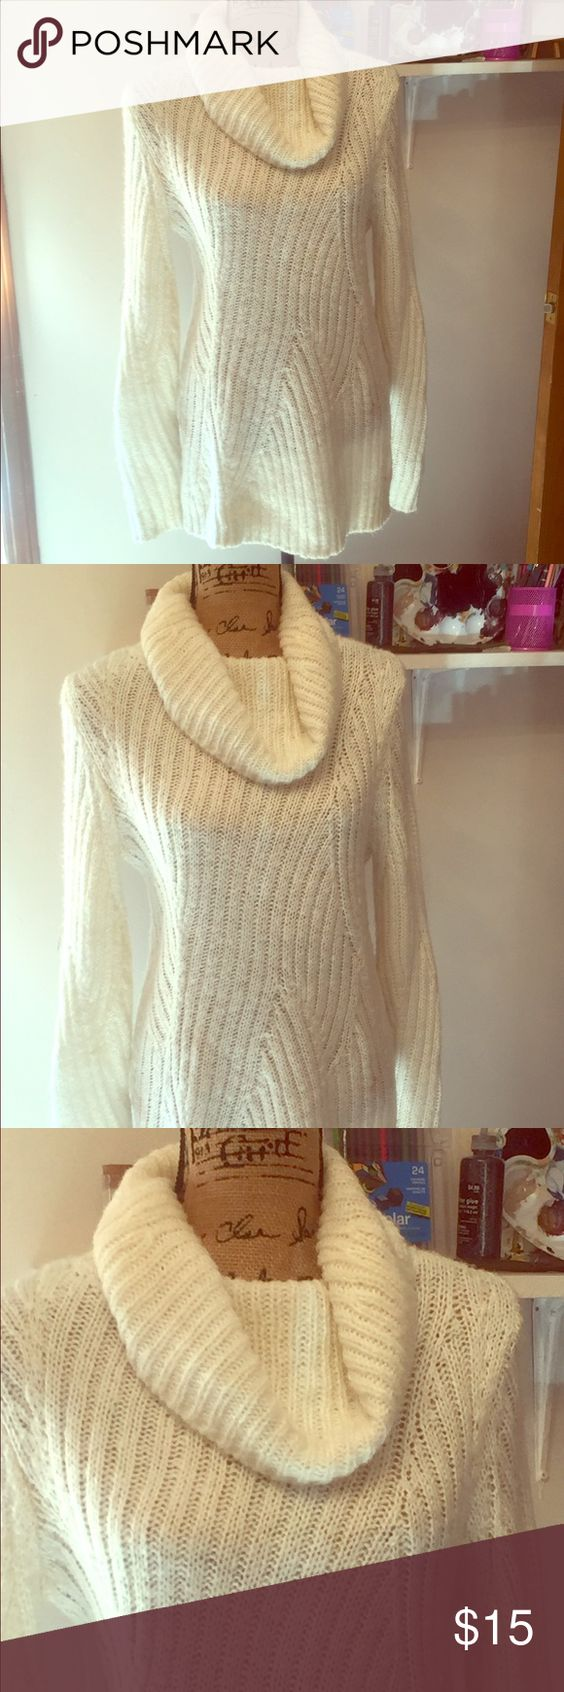 MERONA Sweater Dress Insanely soft!!!! Cream knit sweater dress! It's form-fitting and looks super flattering on. Worn once. Like new! Size S. I take offers and trades FYI on most everything! Merona Dresses Long Sleeve